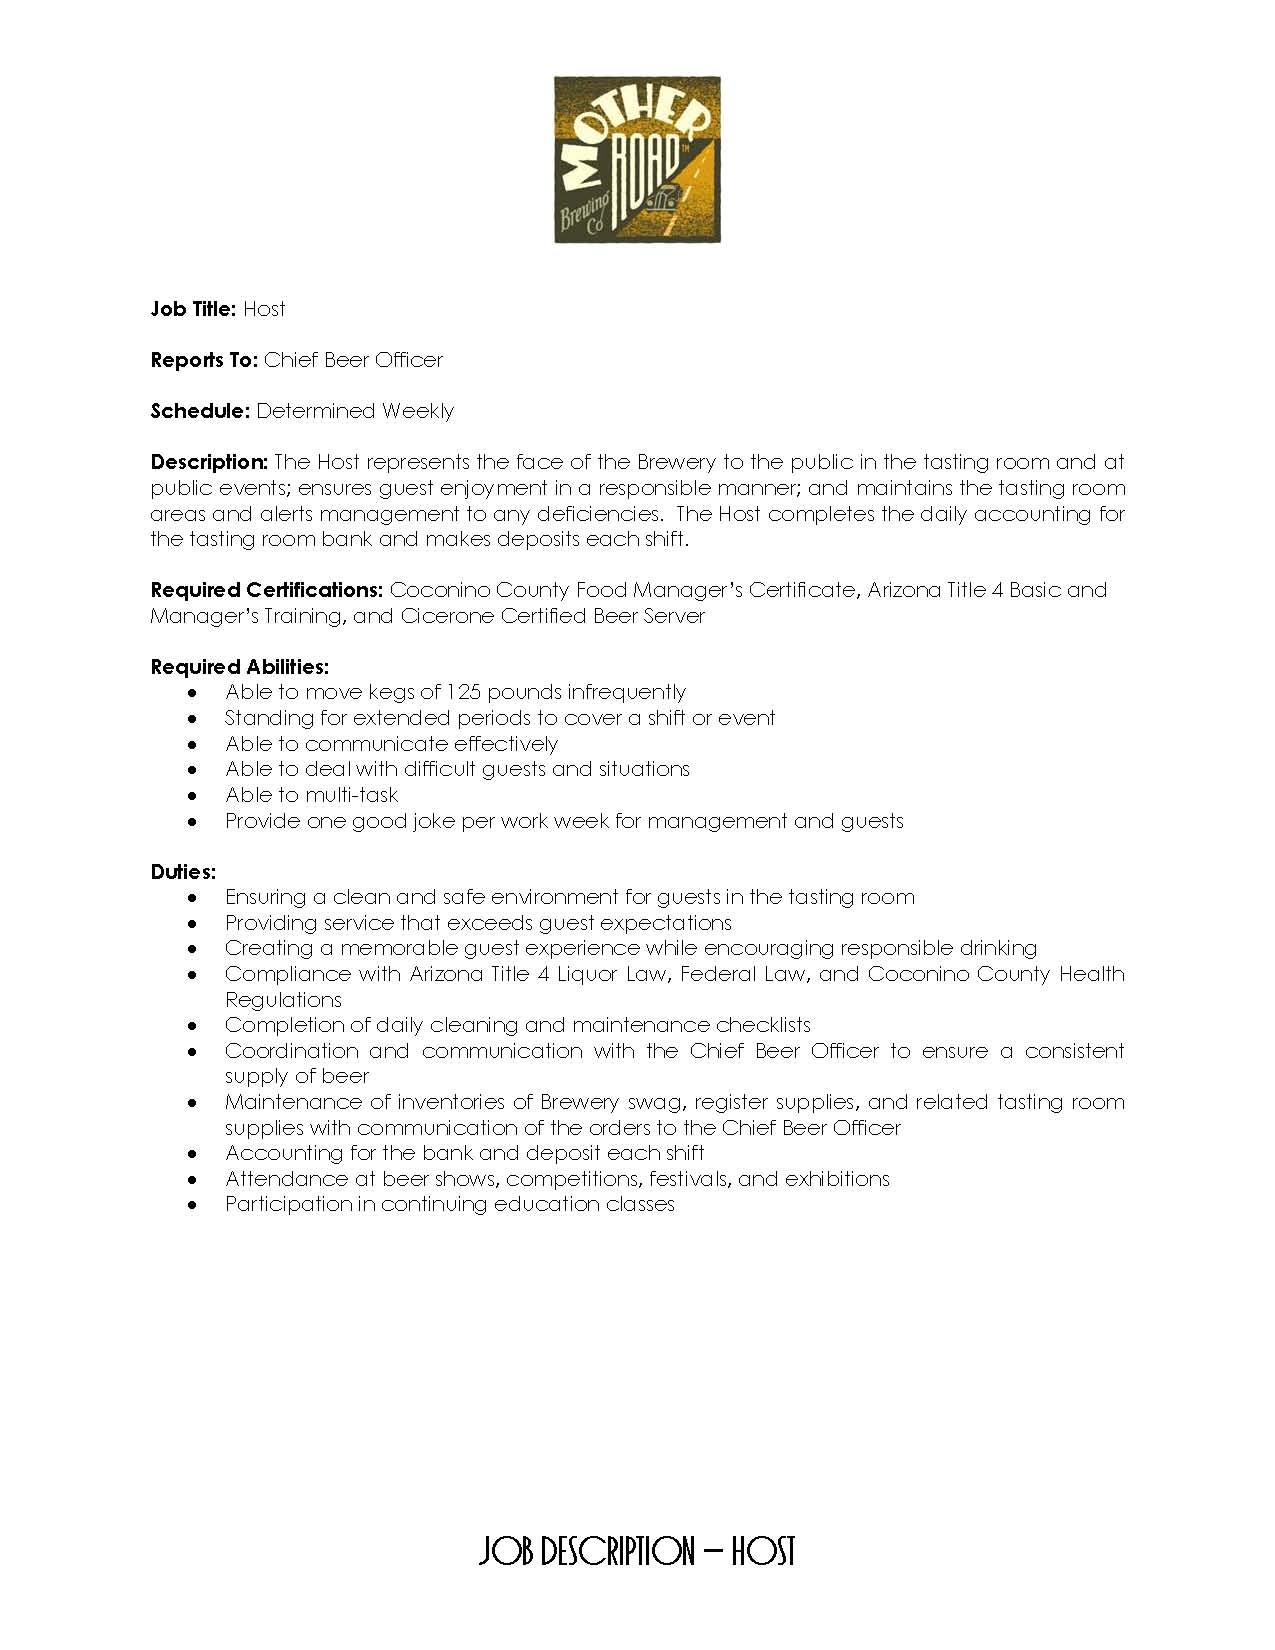 Hostess Job Description Restaurant Hostess Resume Description